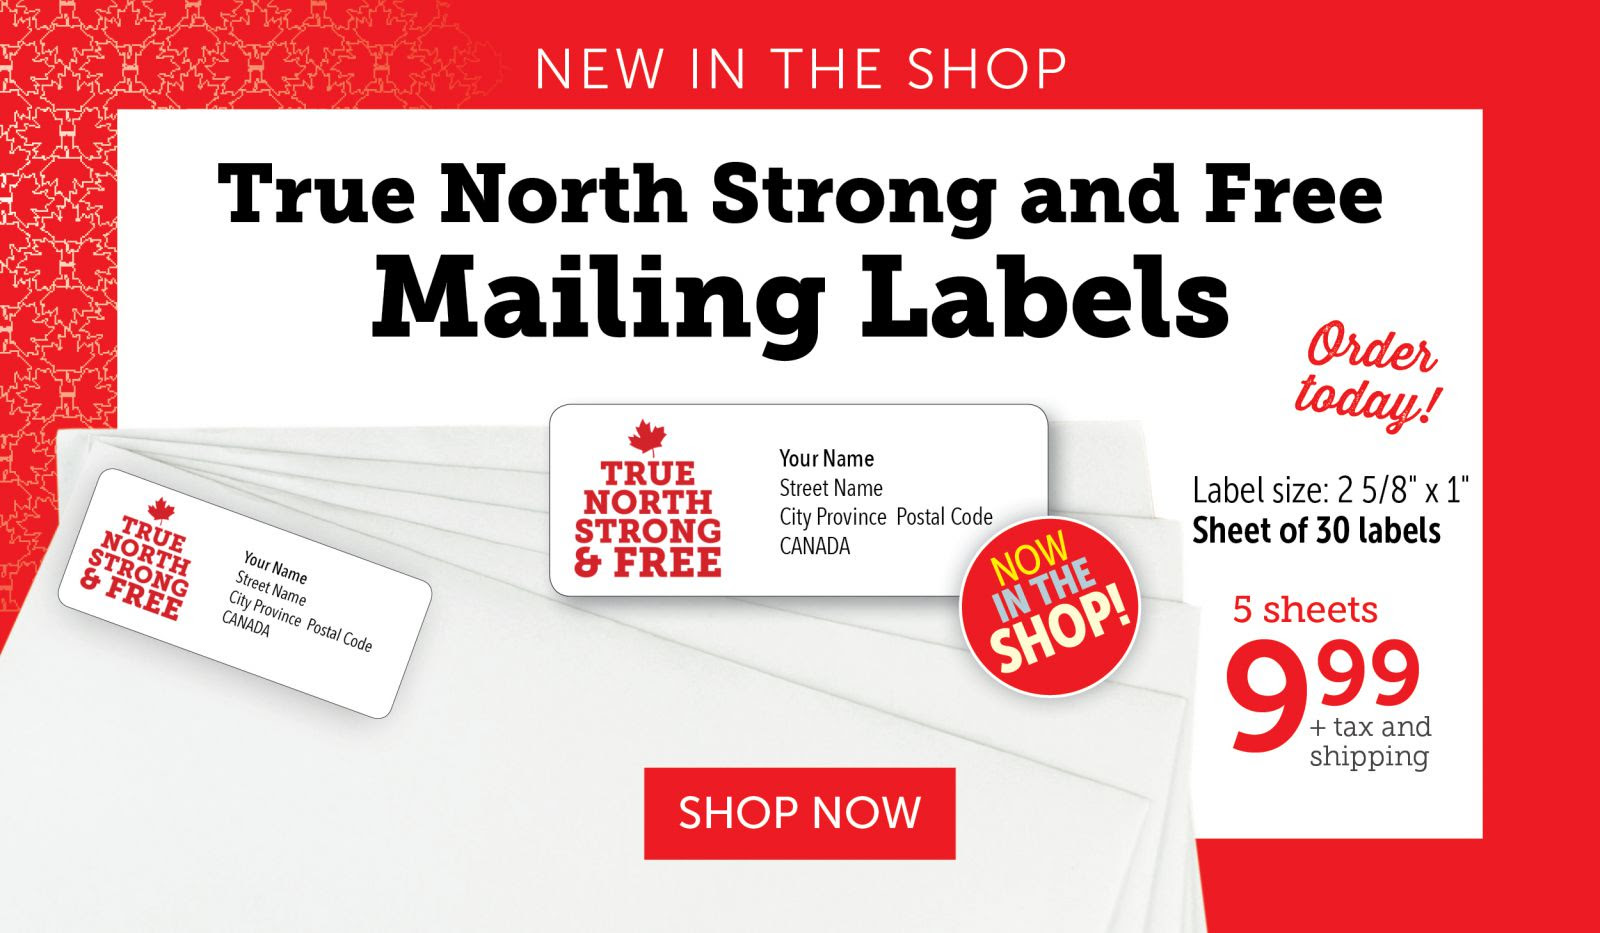 True North Strong and Free Mailing Labels!